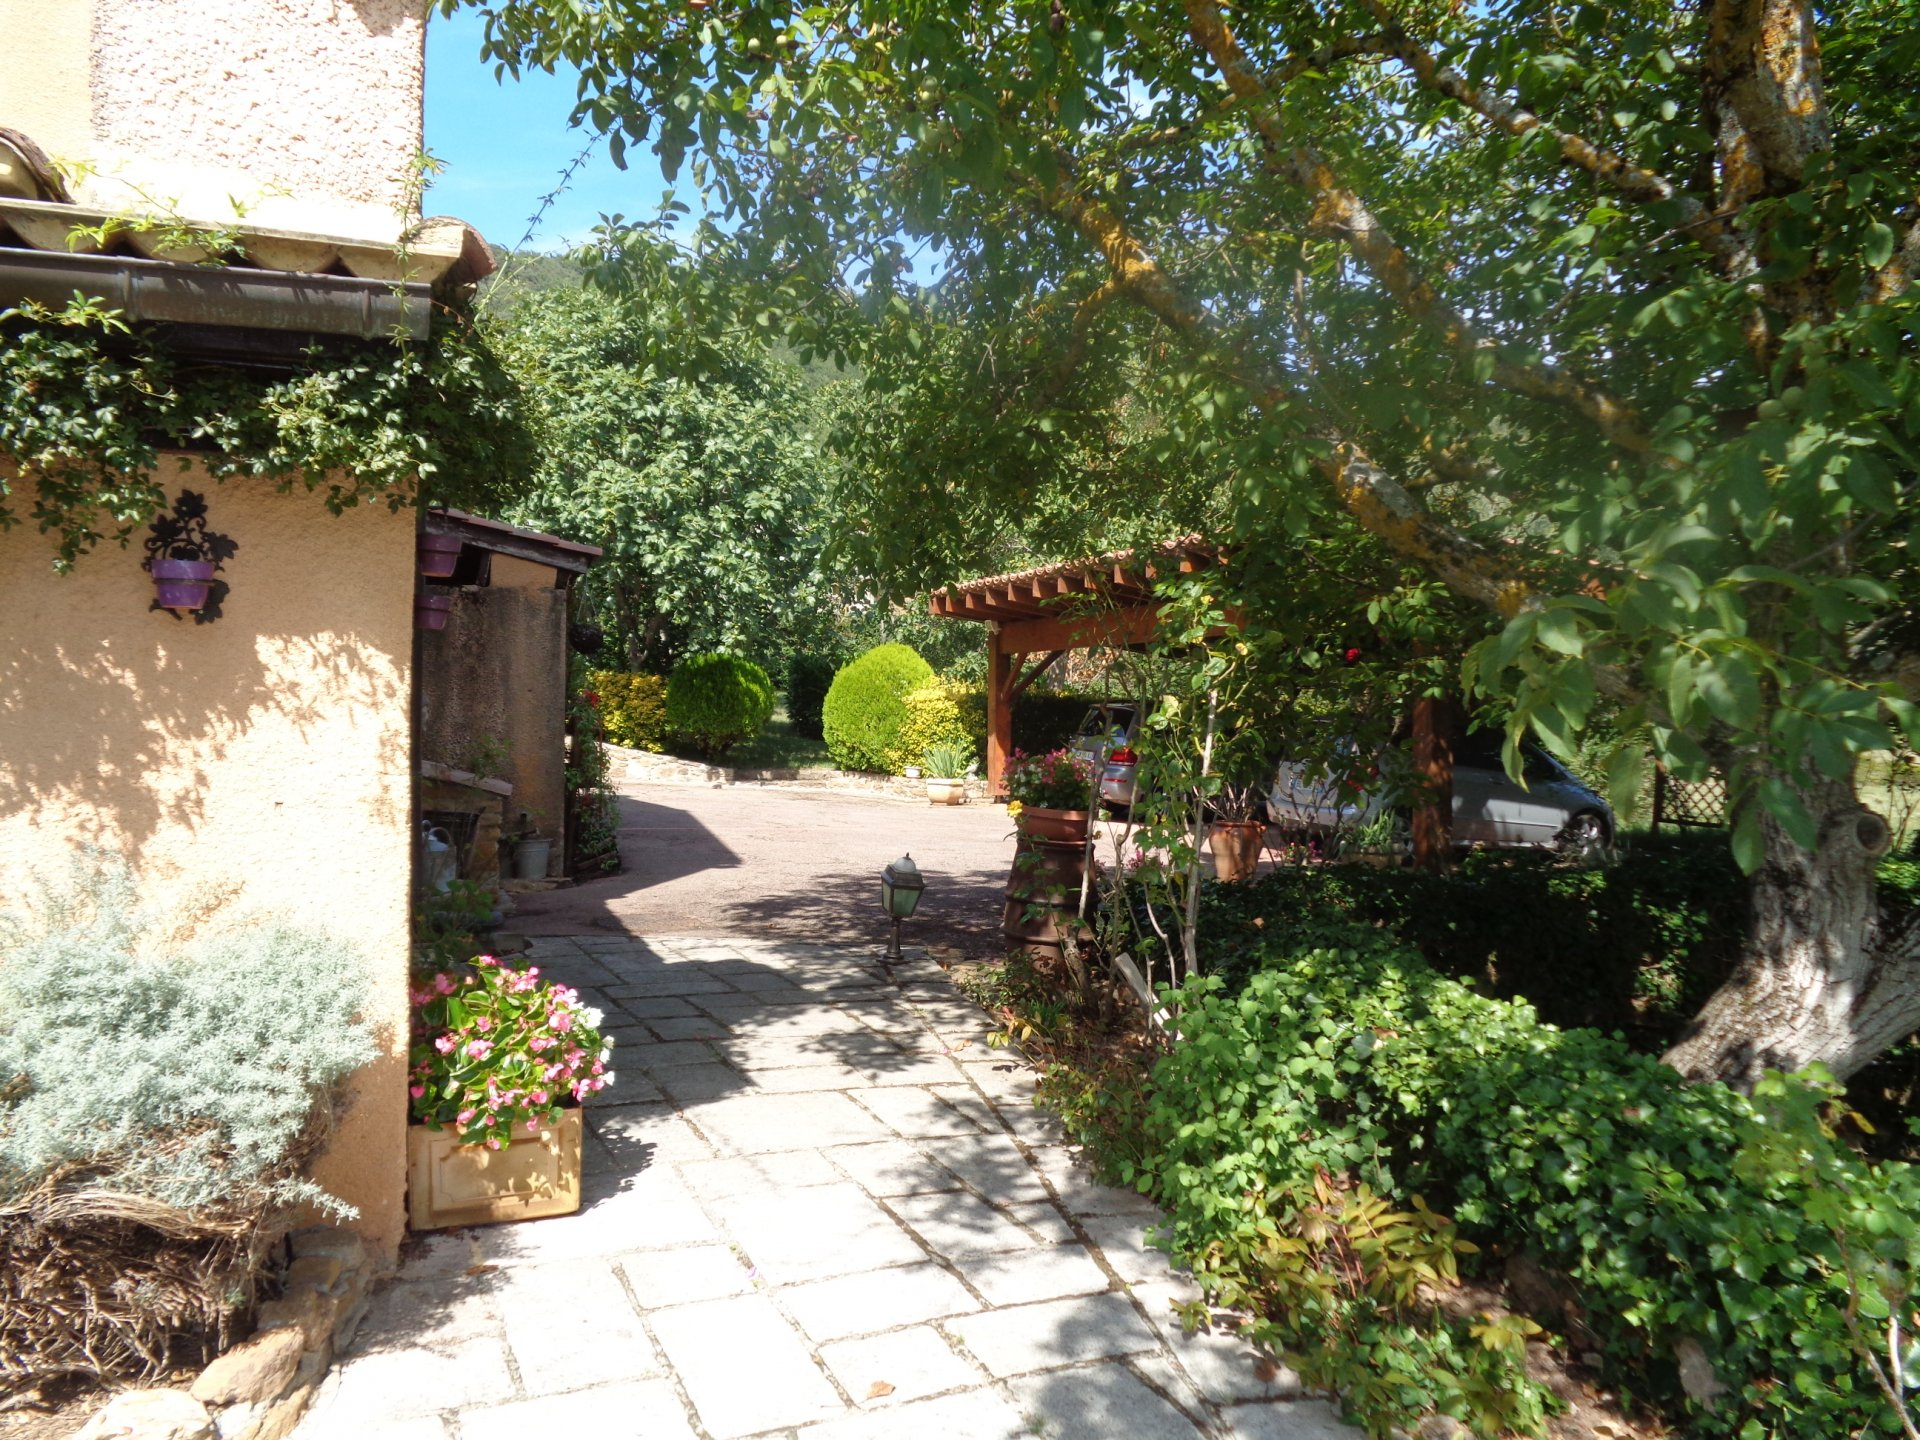 Superb country estate with over 50 hectares of land